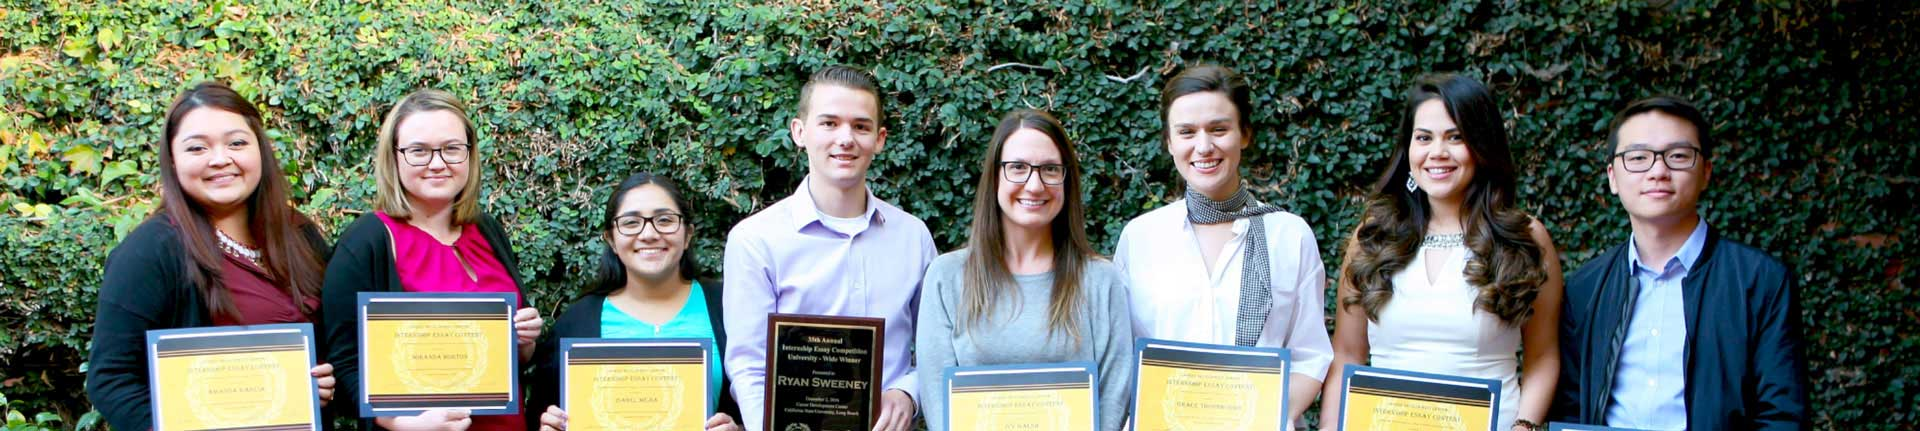 8 Student winners of the CDC Internship Essay Contest Scholarship